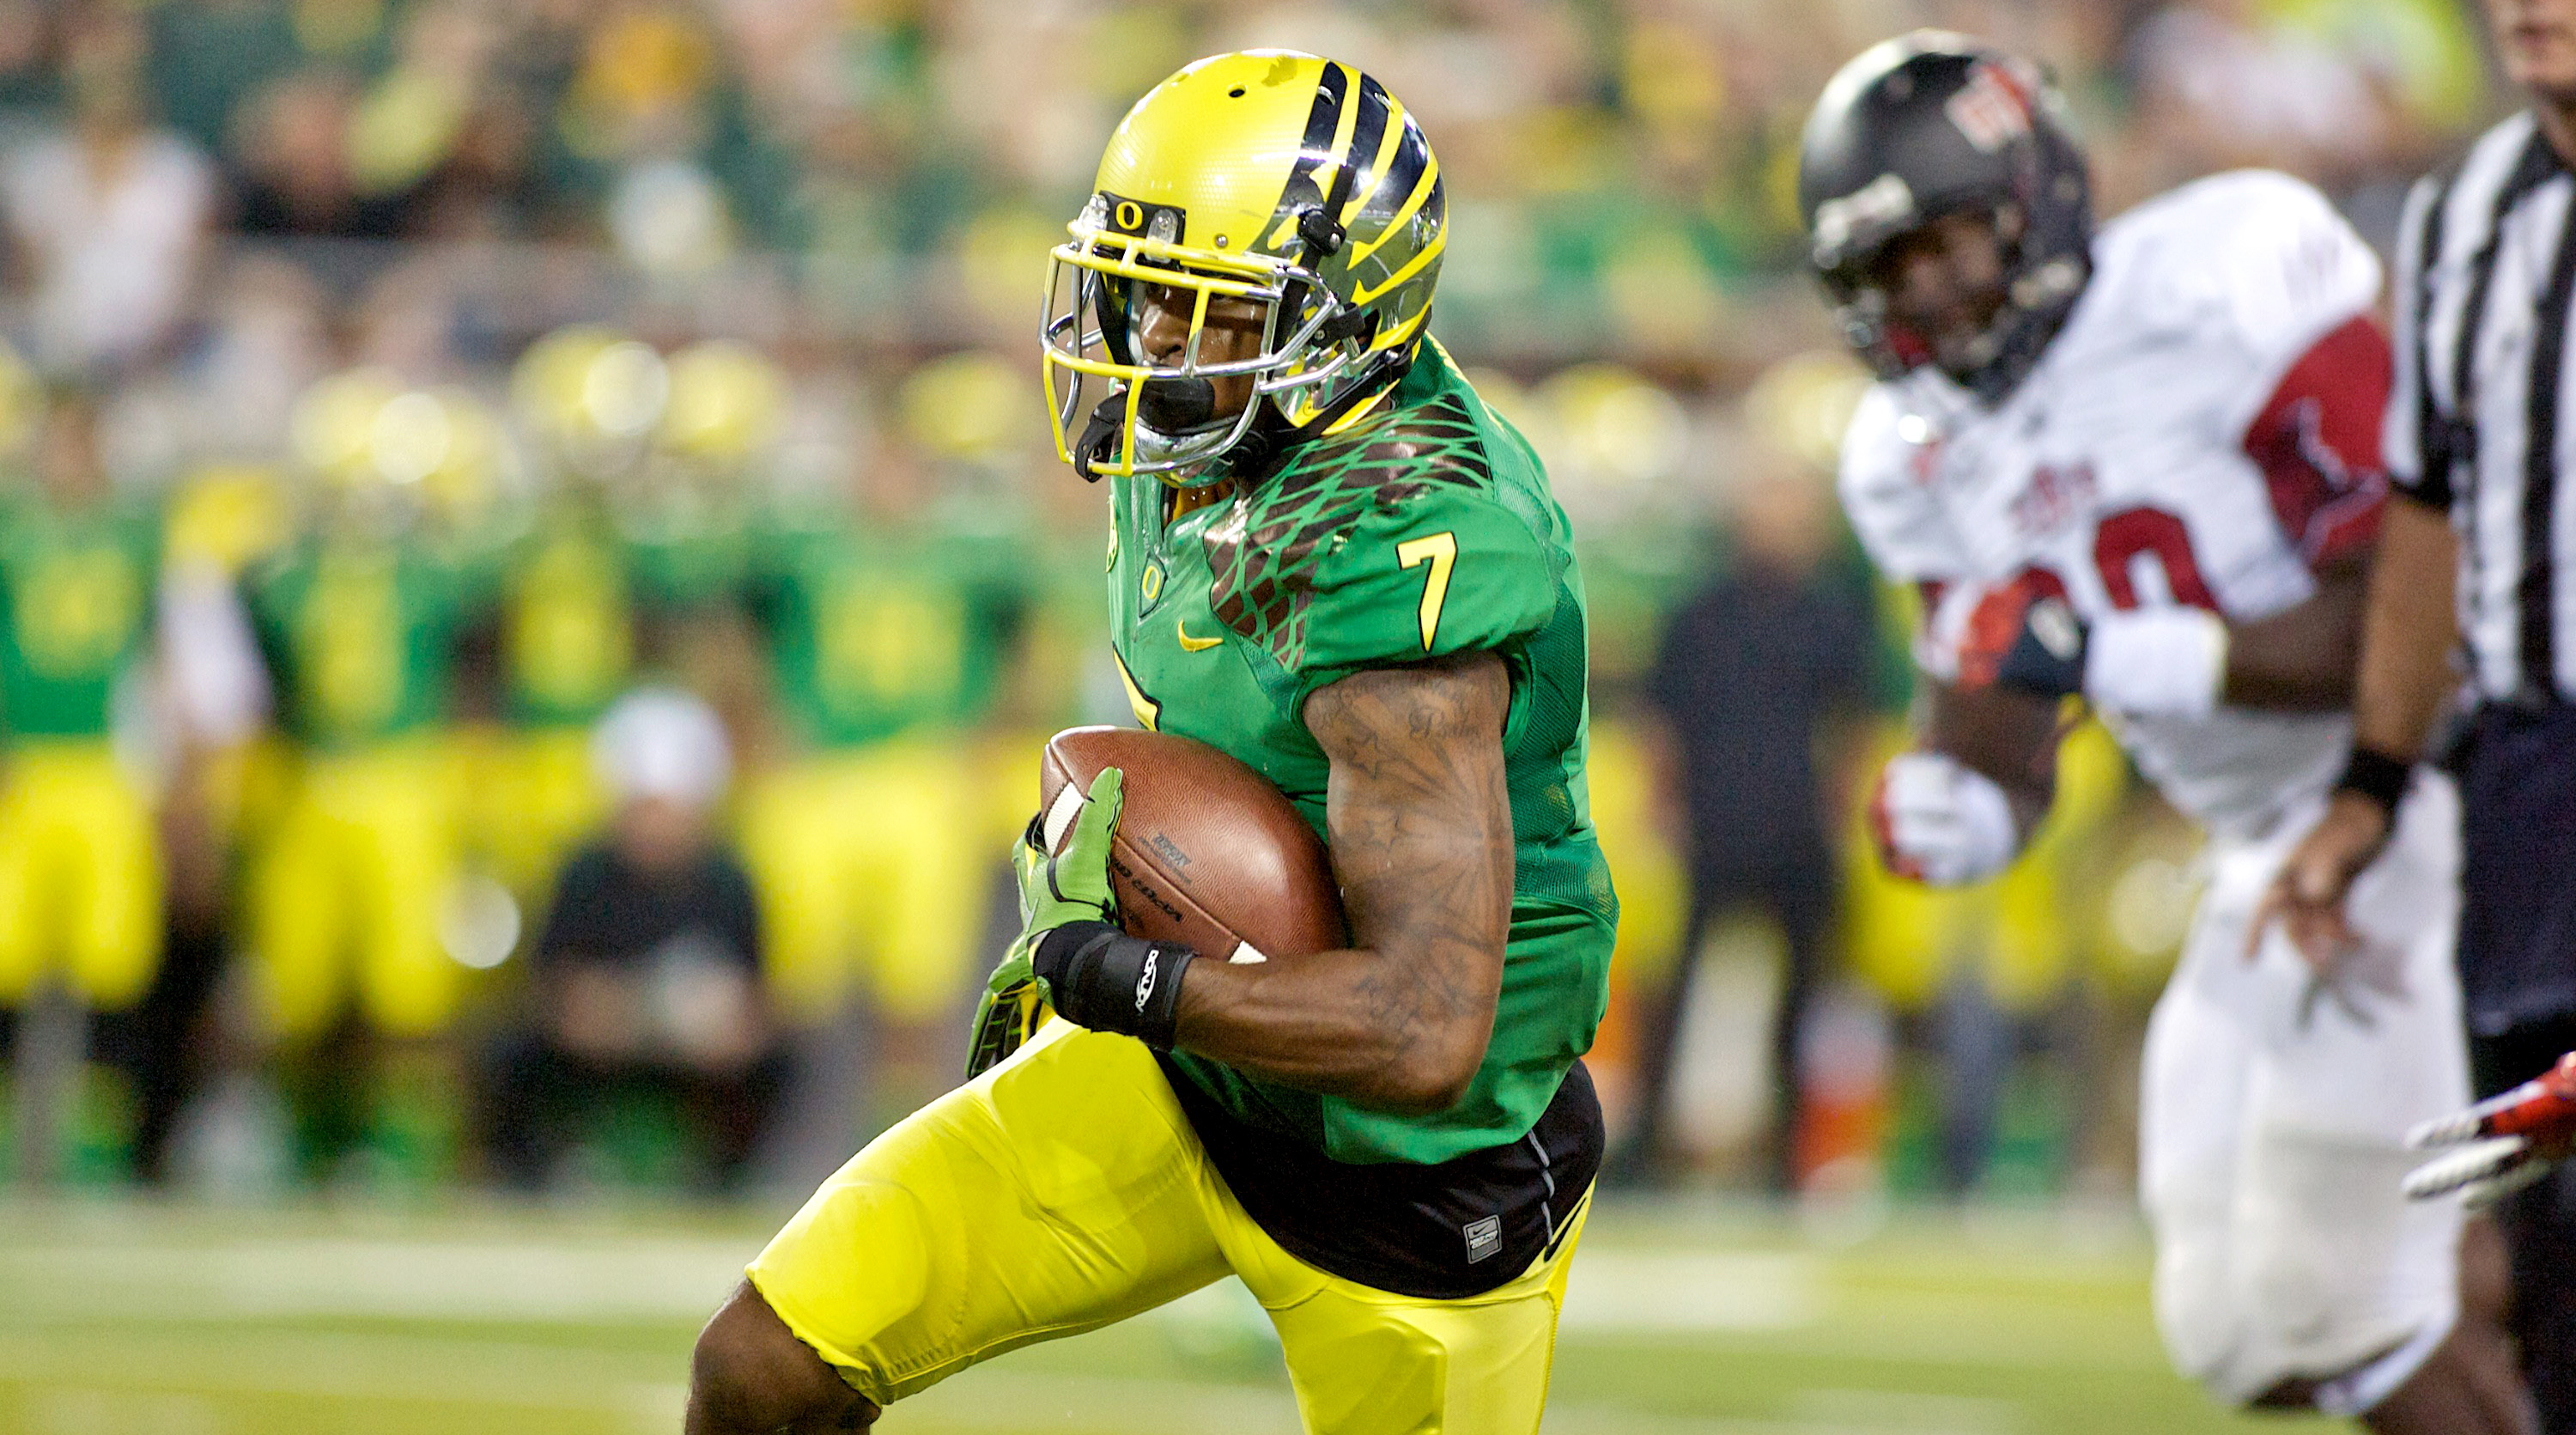 former-oregon-football-star-keanon-lowe-stops-an-armed-student-at-local-high-school